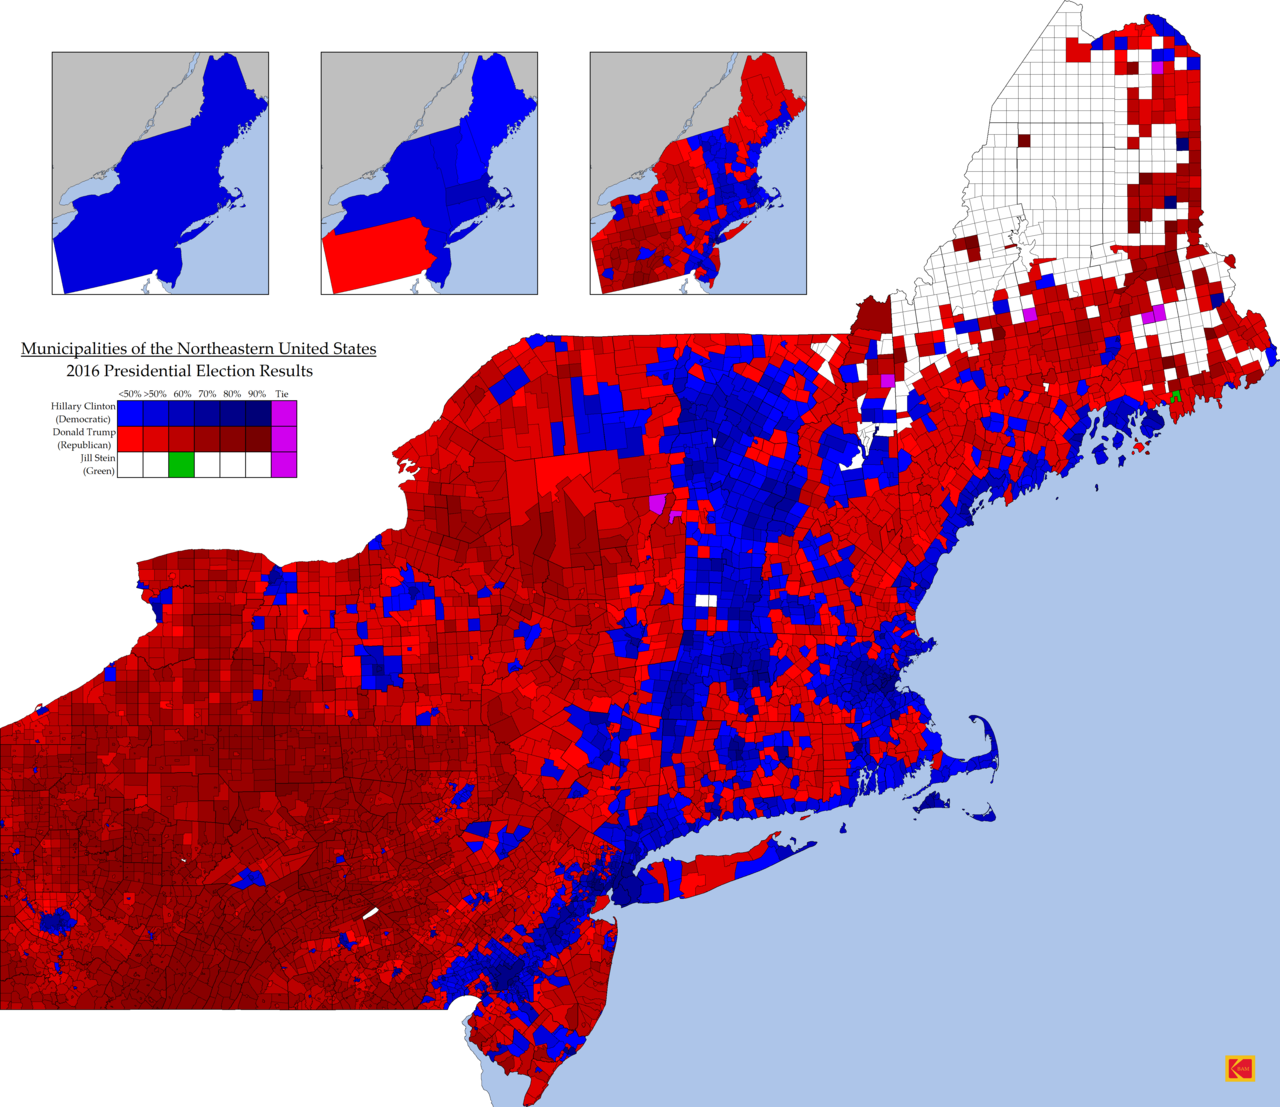 2016 election results in the Northeast US. | Maps: Politics\'n Social ...